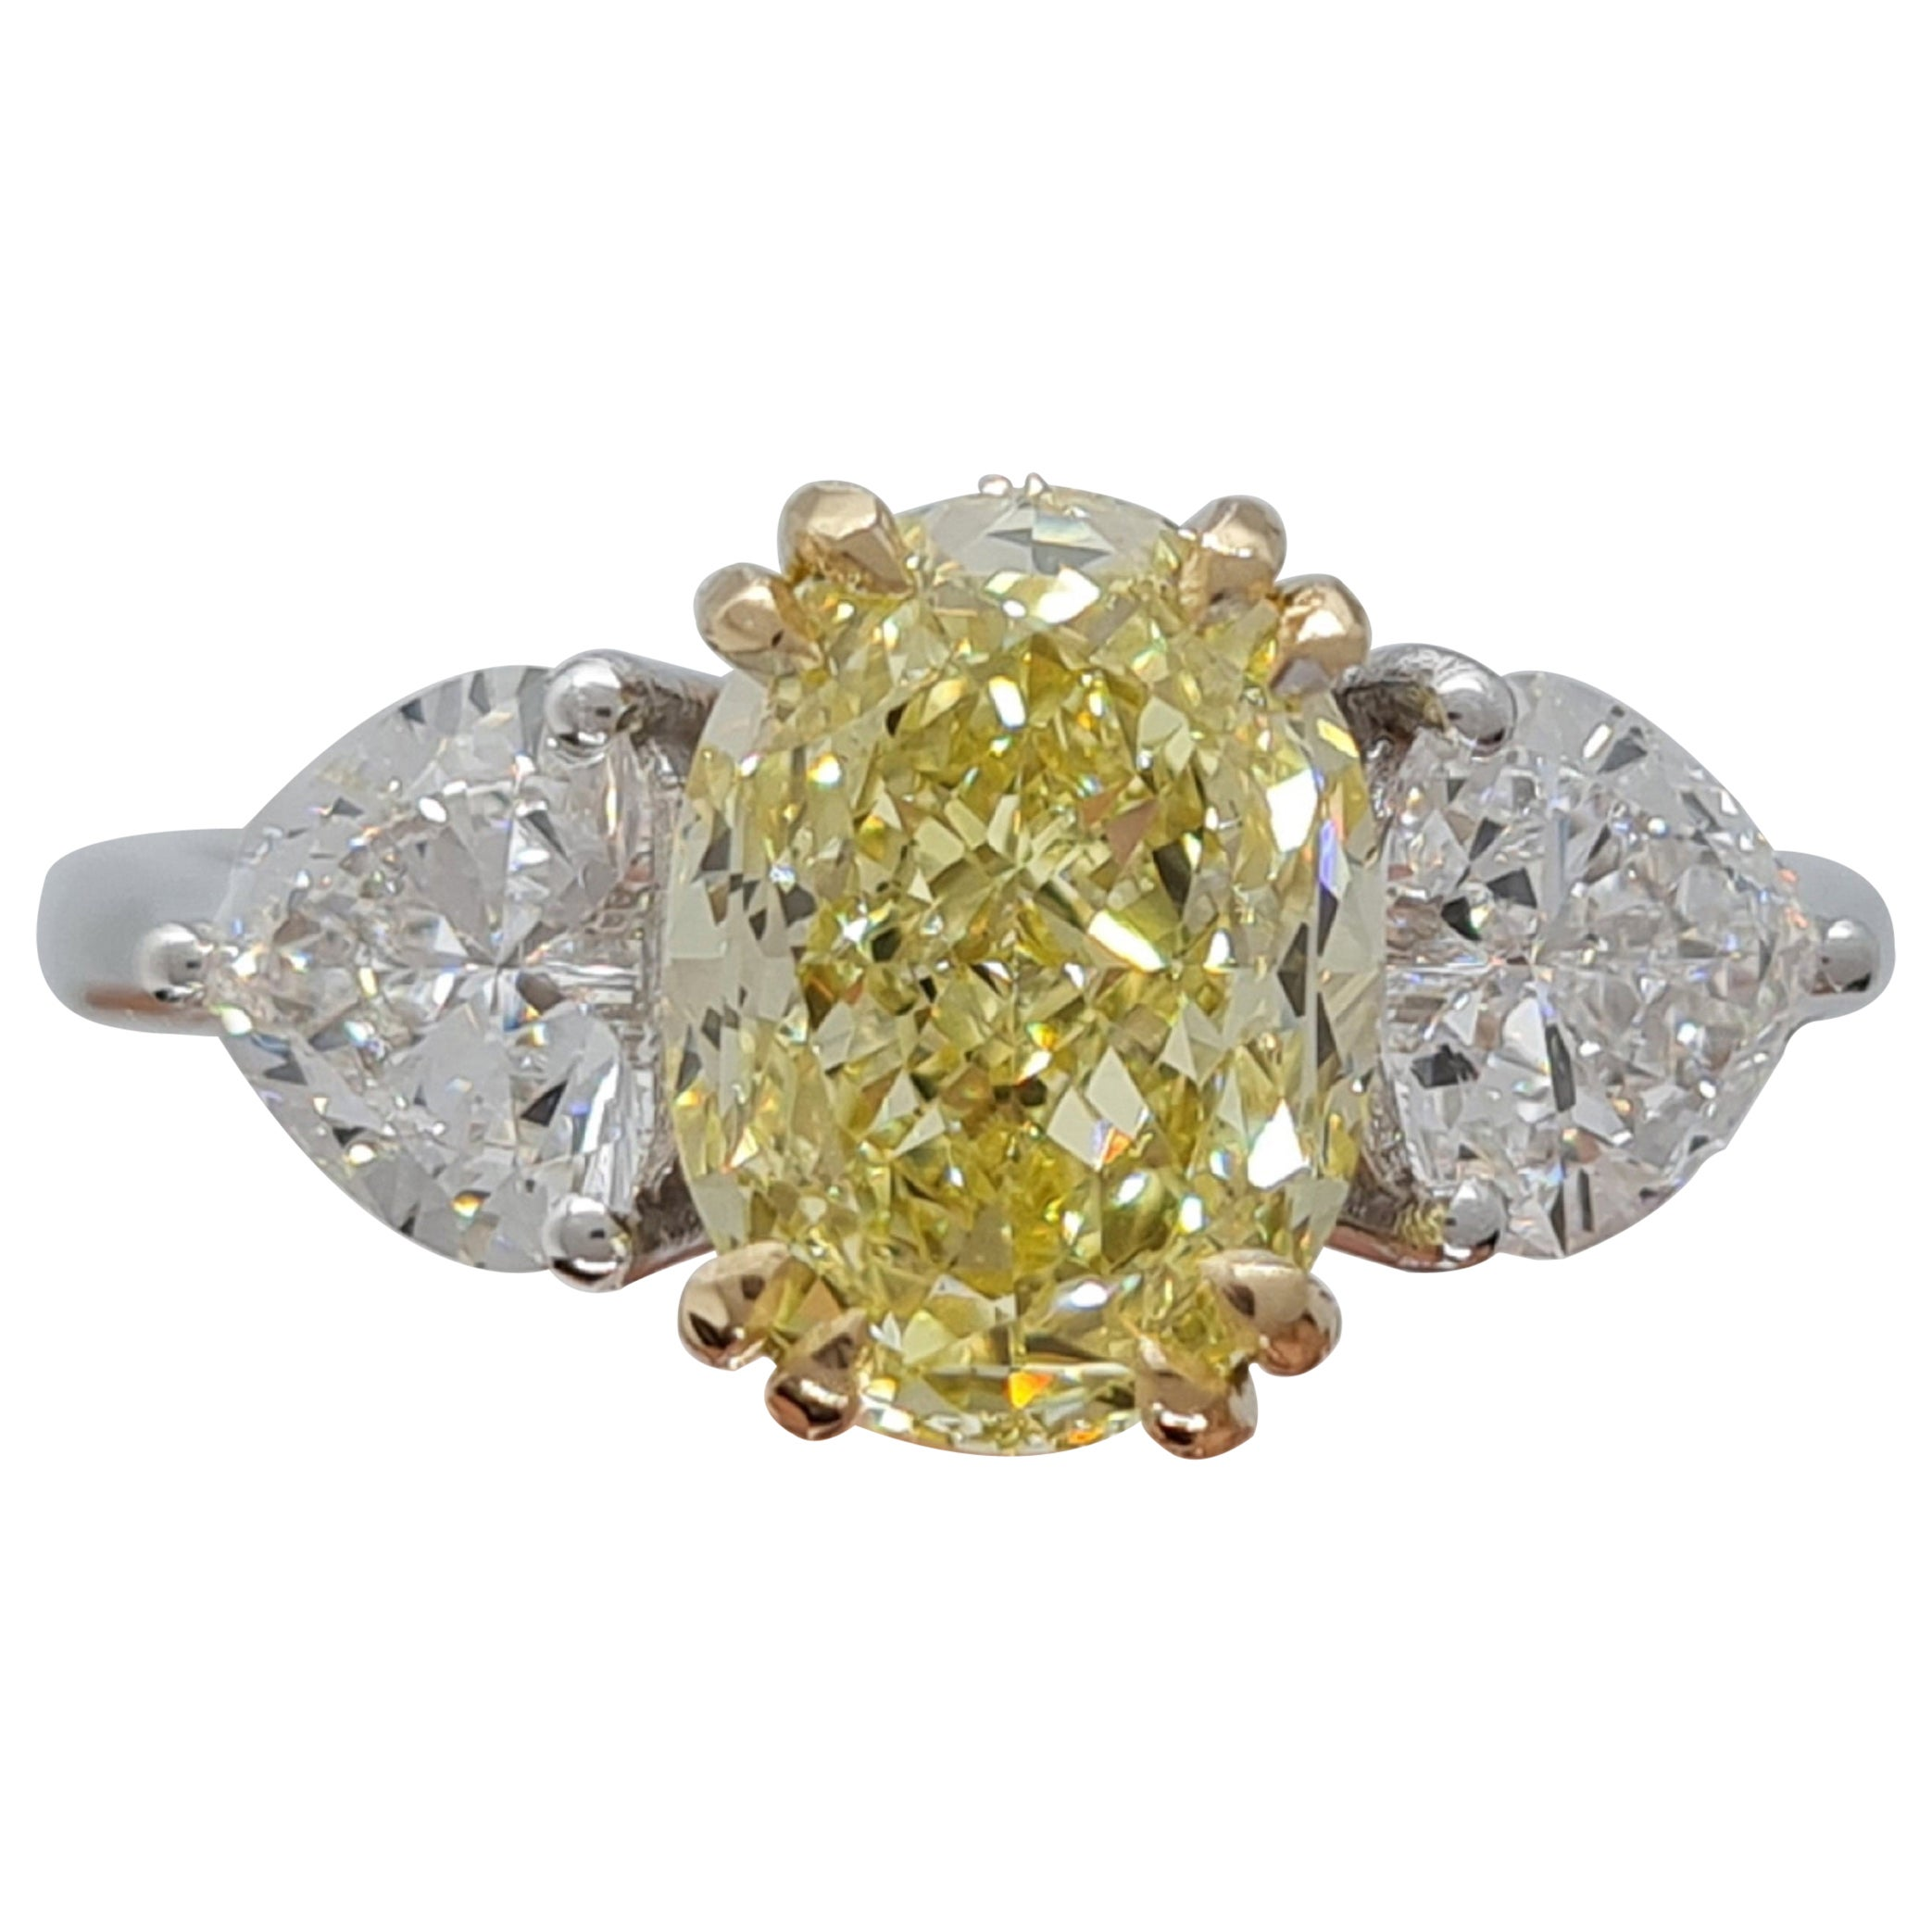 GIA Certified 3.05 Carat Internally Flawless Fancy Yellow Oval Diamond Ring